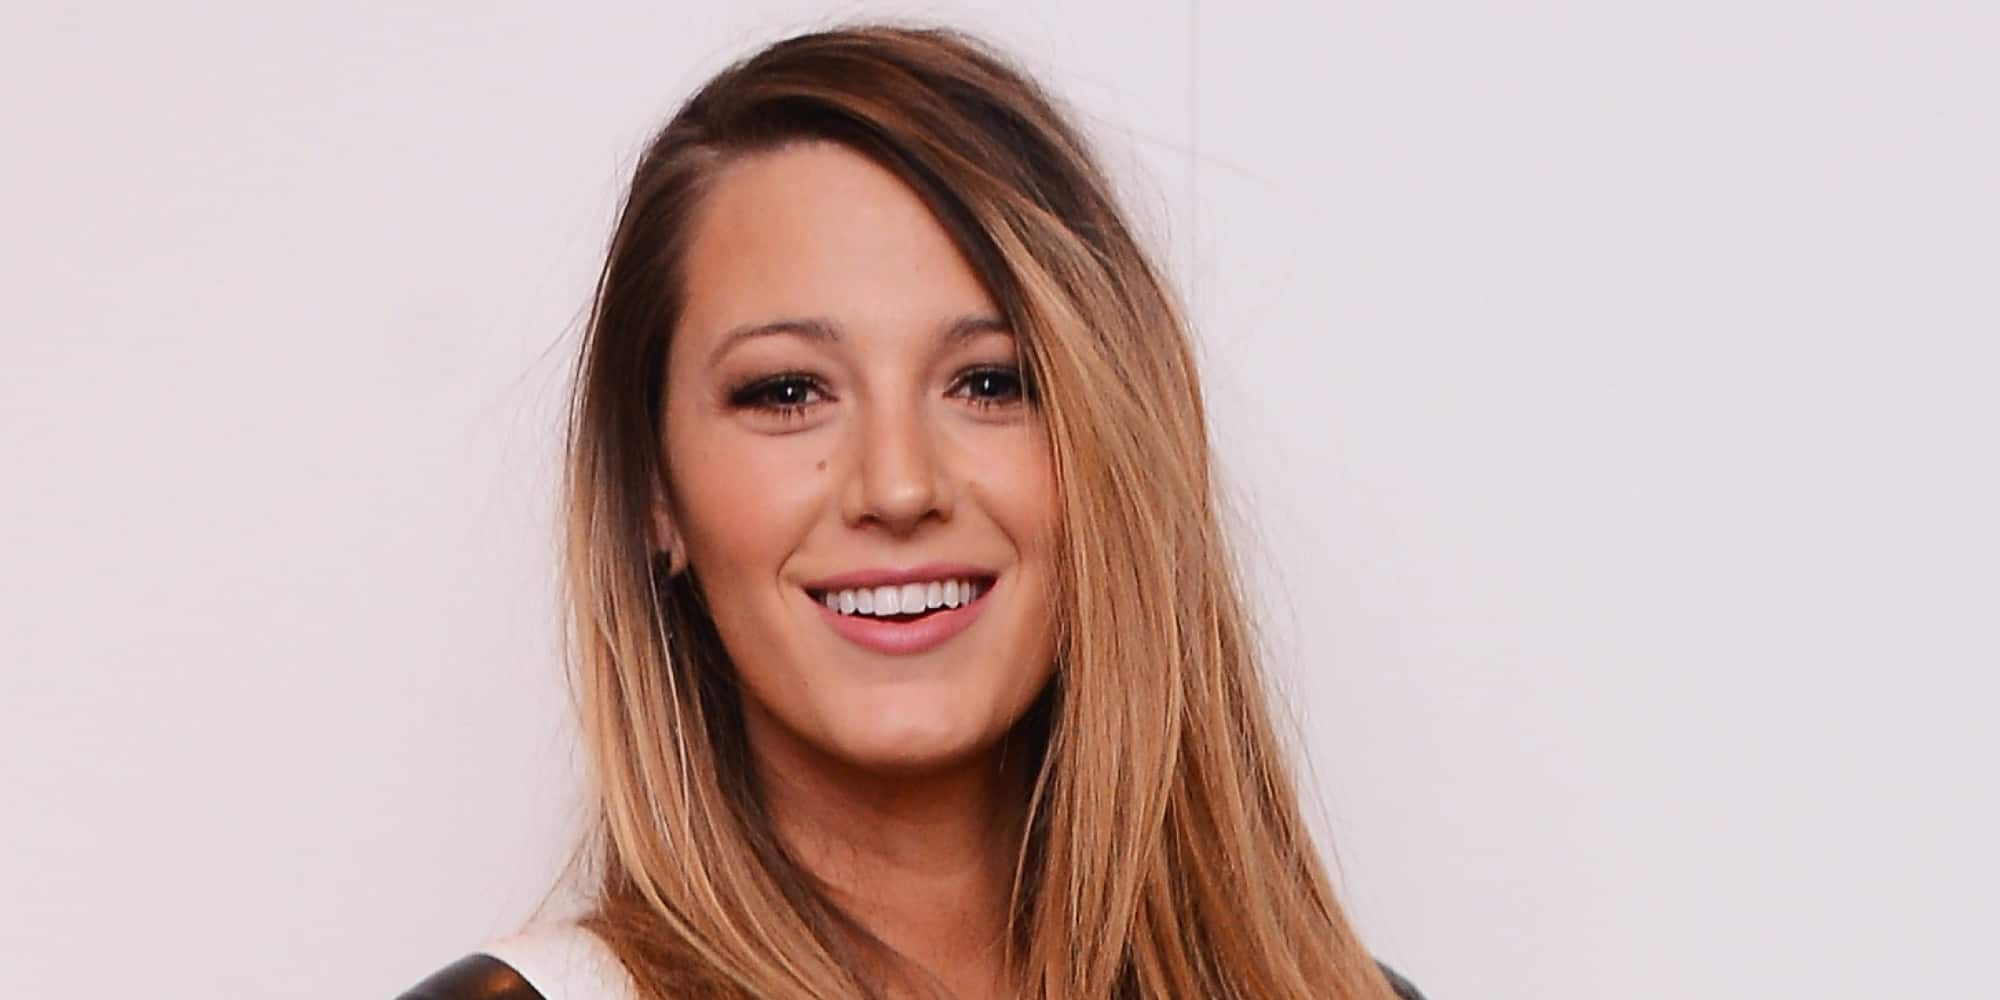 Blake Lively To Play A MMA Fighter In 'Bruised'